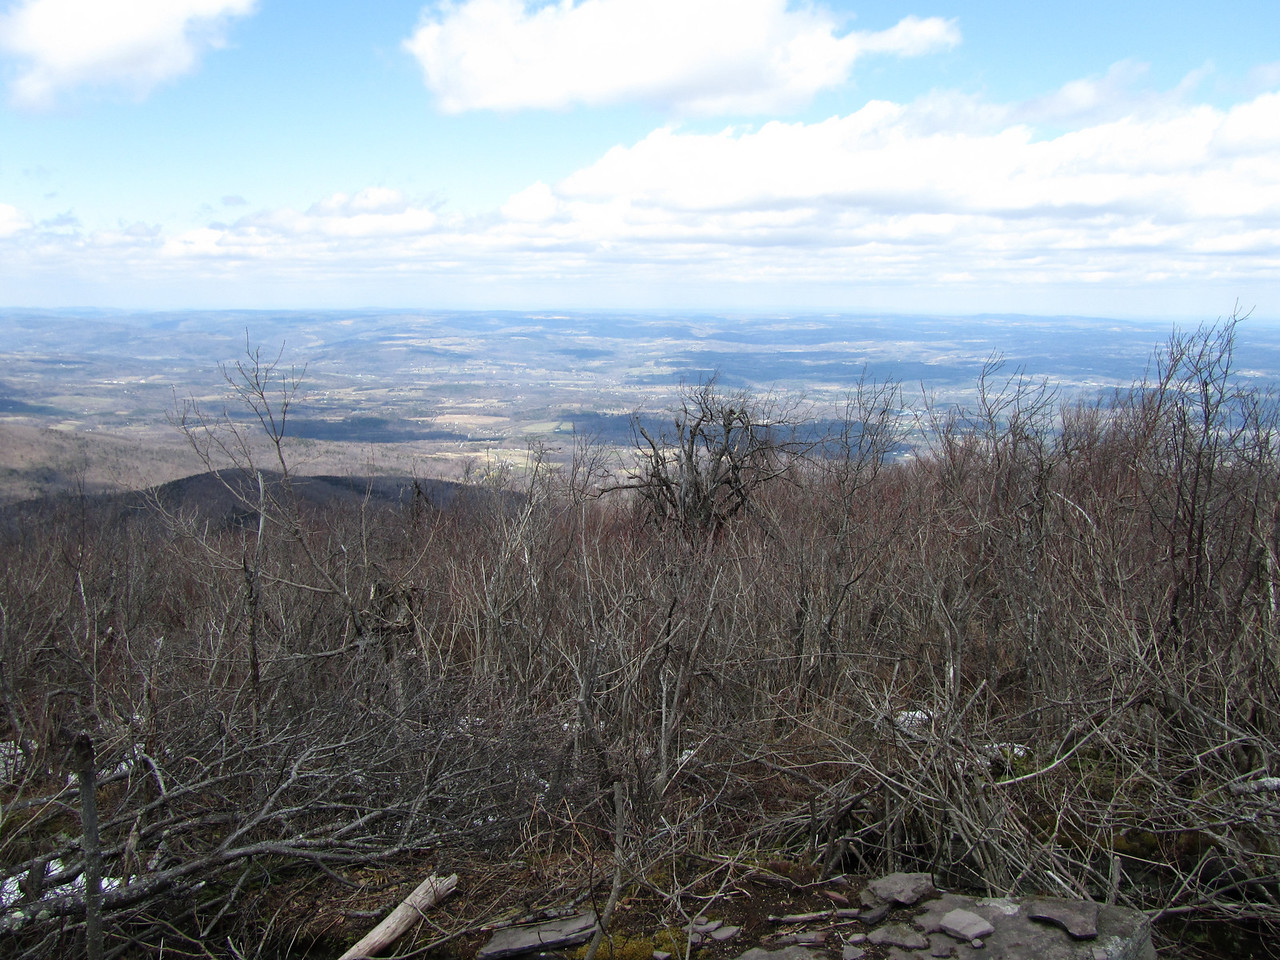 Windham is the furthest north of all Catskills high peaks. Way in the background are Albany and probably the ADK high peaks, 200 miles away. Pretty good view.